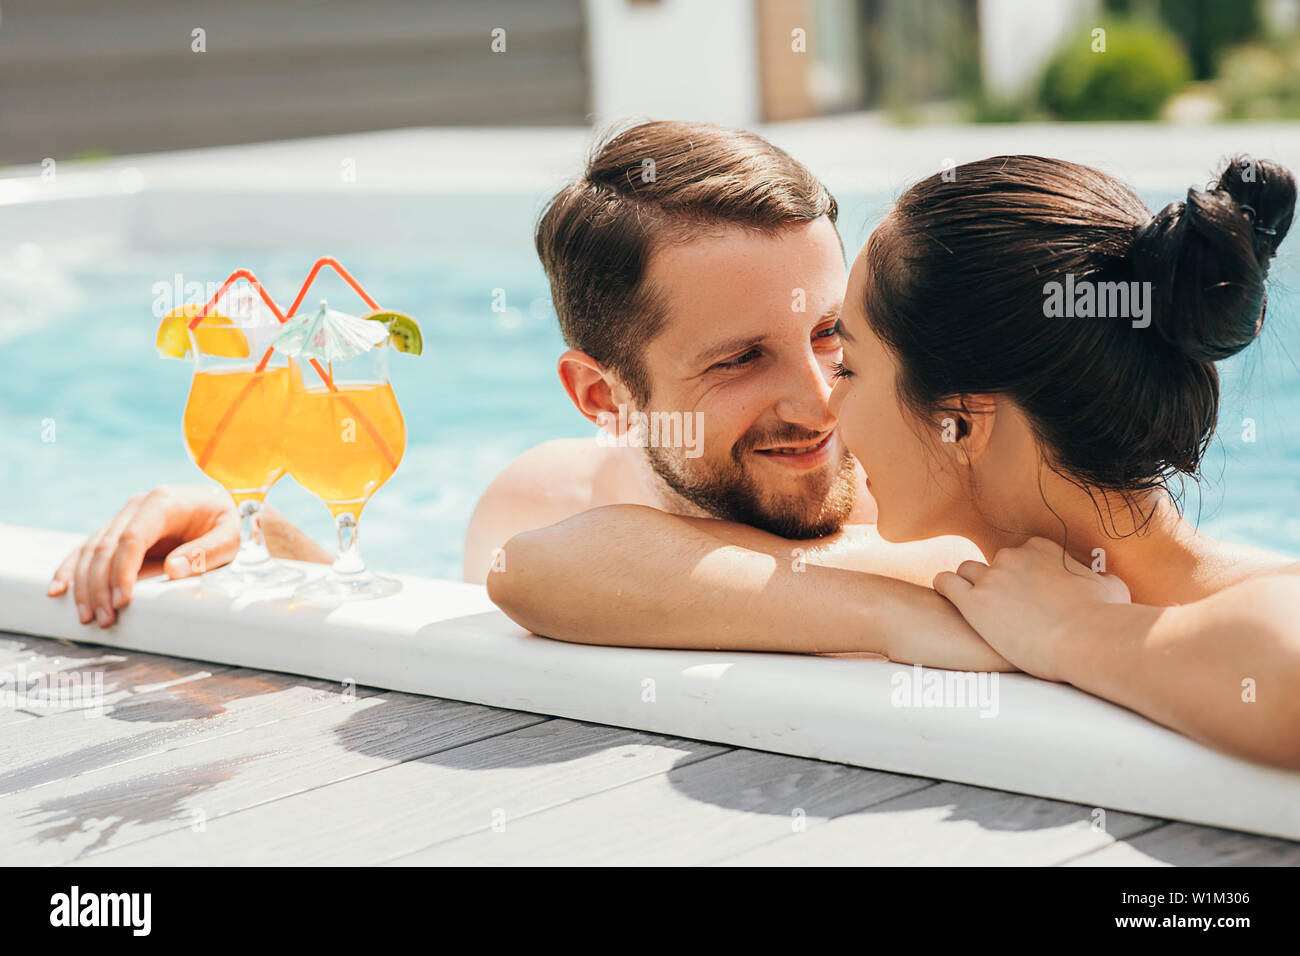 man and a woman look lovingly at each other while in the pool. Goodbye work, hi summer vacation-swimming and tanning Stock Photo